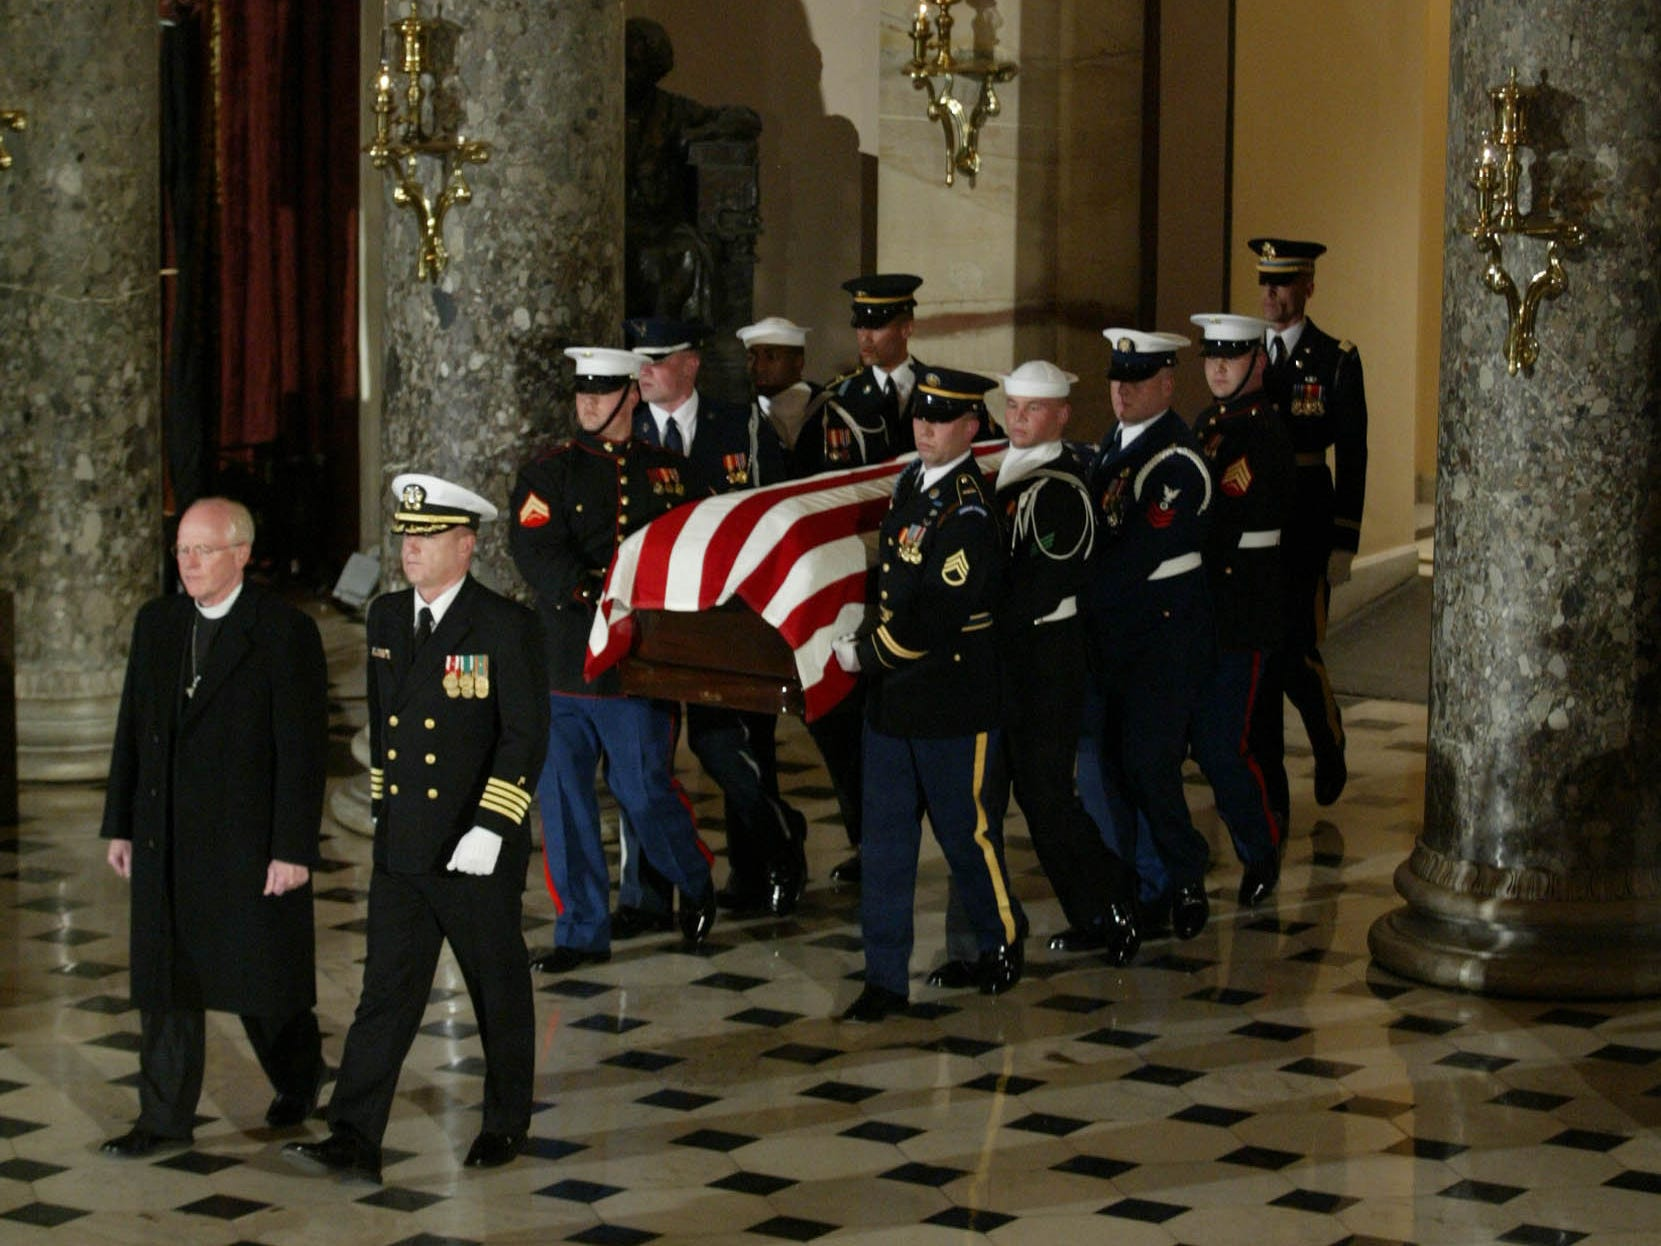 The casket of former President Gerald R. Ford is escorted through the National Statuary Hall inside the Capitol in Washington on Saturday, Dec. 30, 2006.